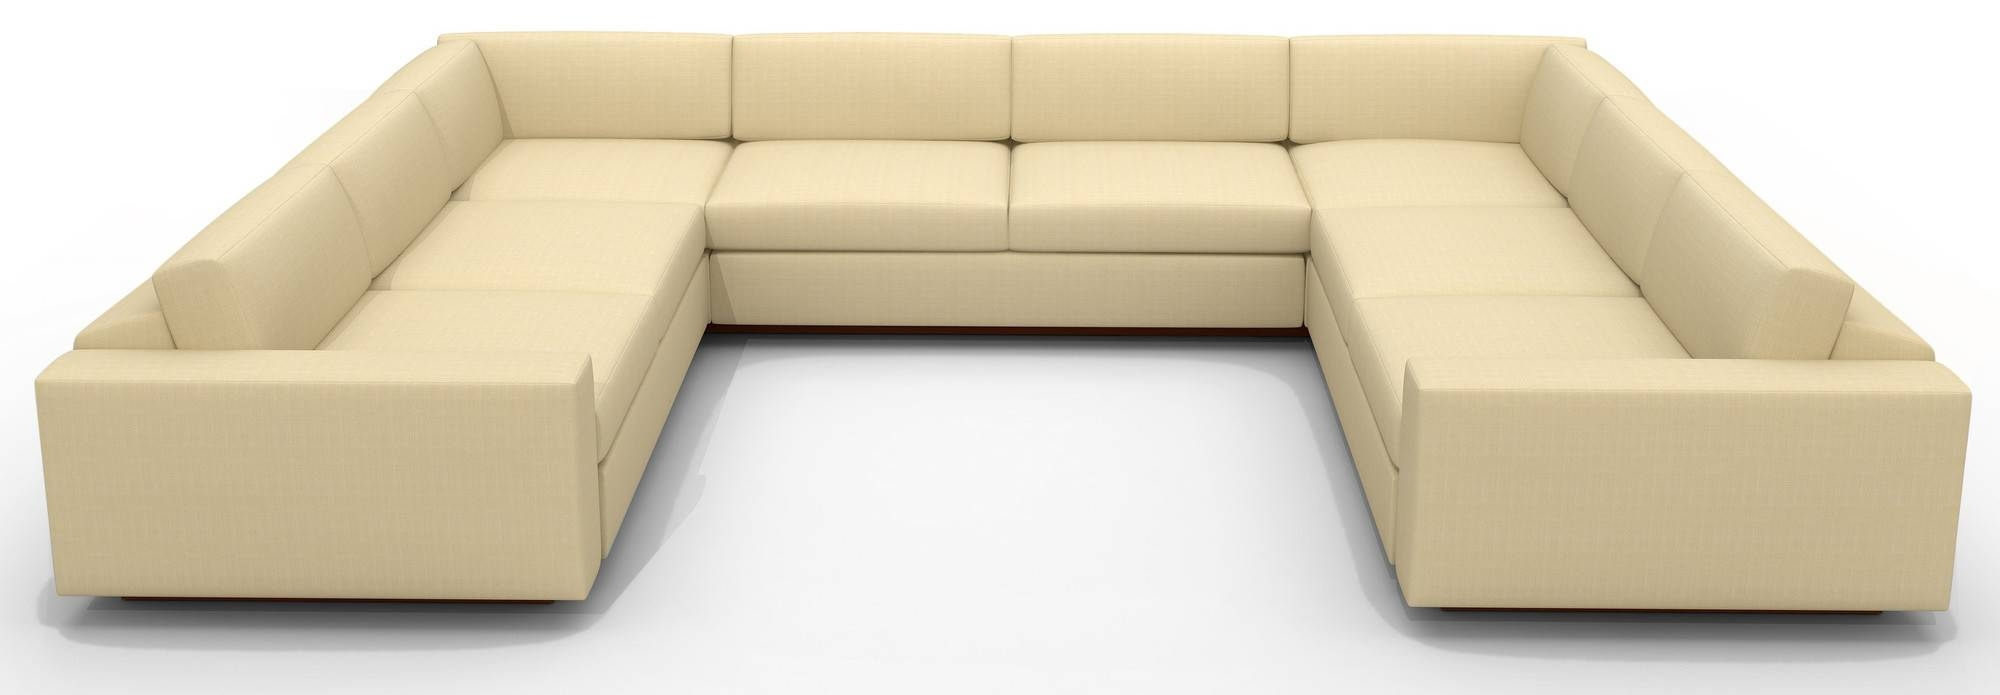 Sofa Set C Shape in C Shaped Sofas (Image 24 of 30)